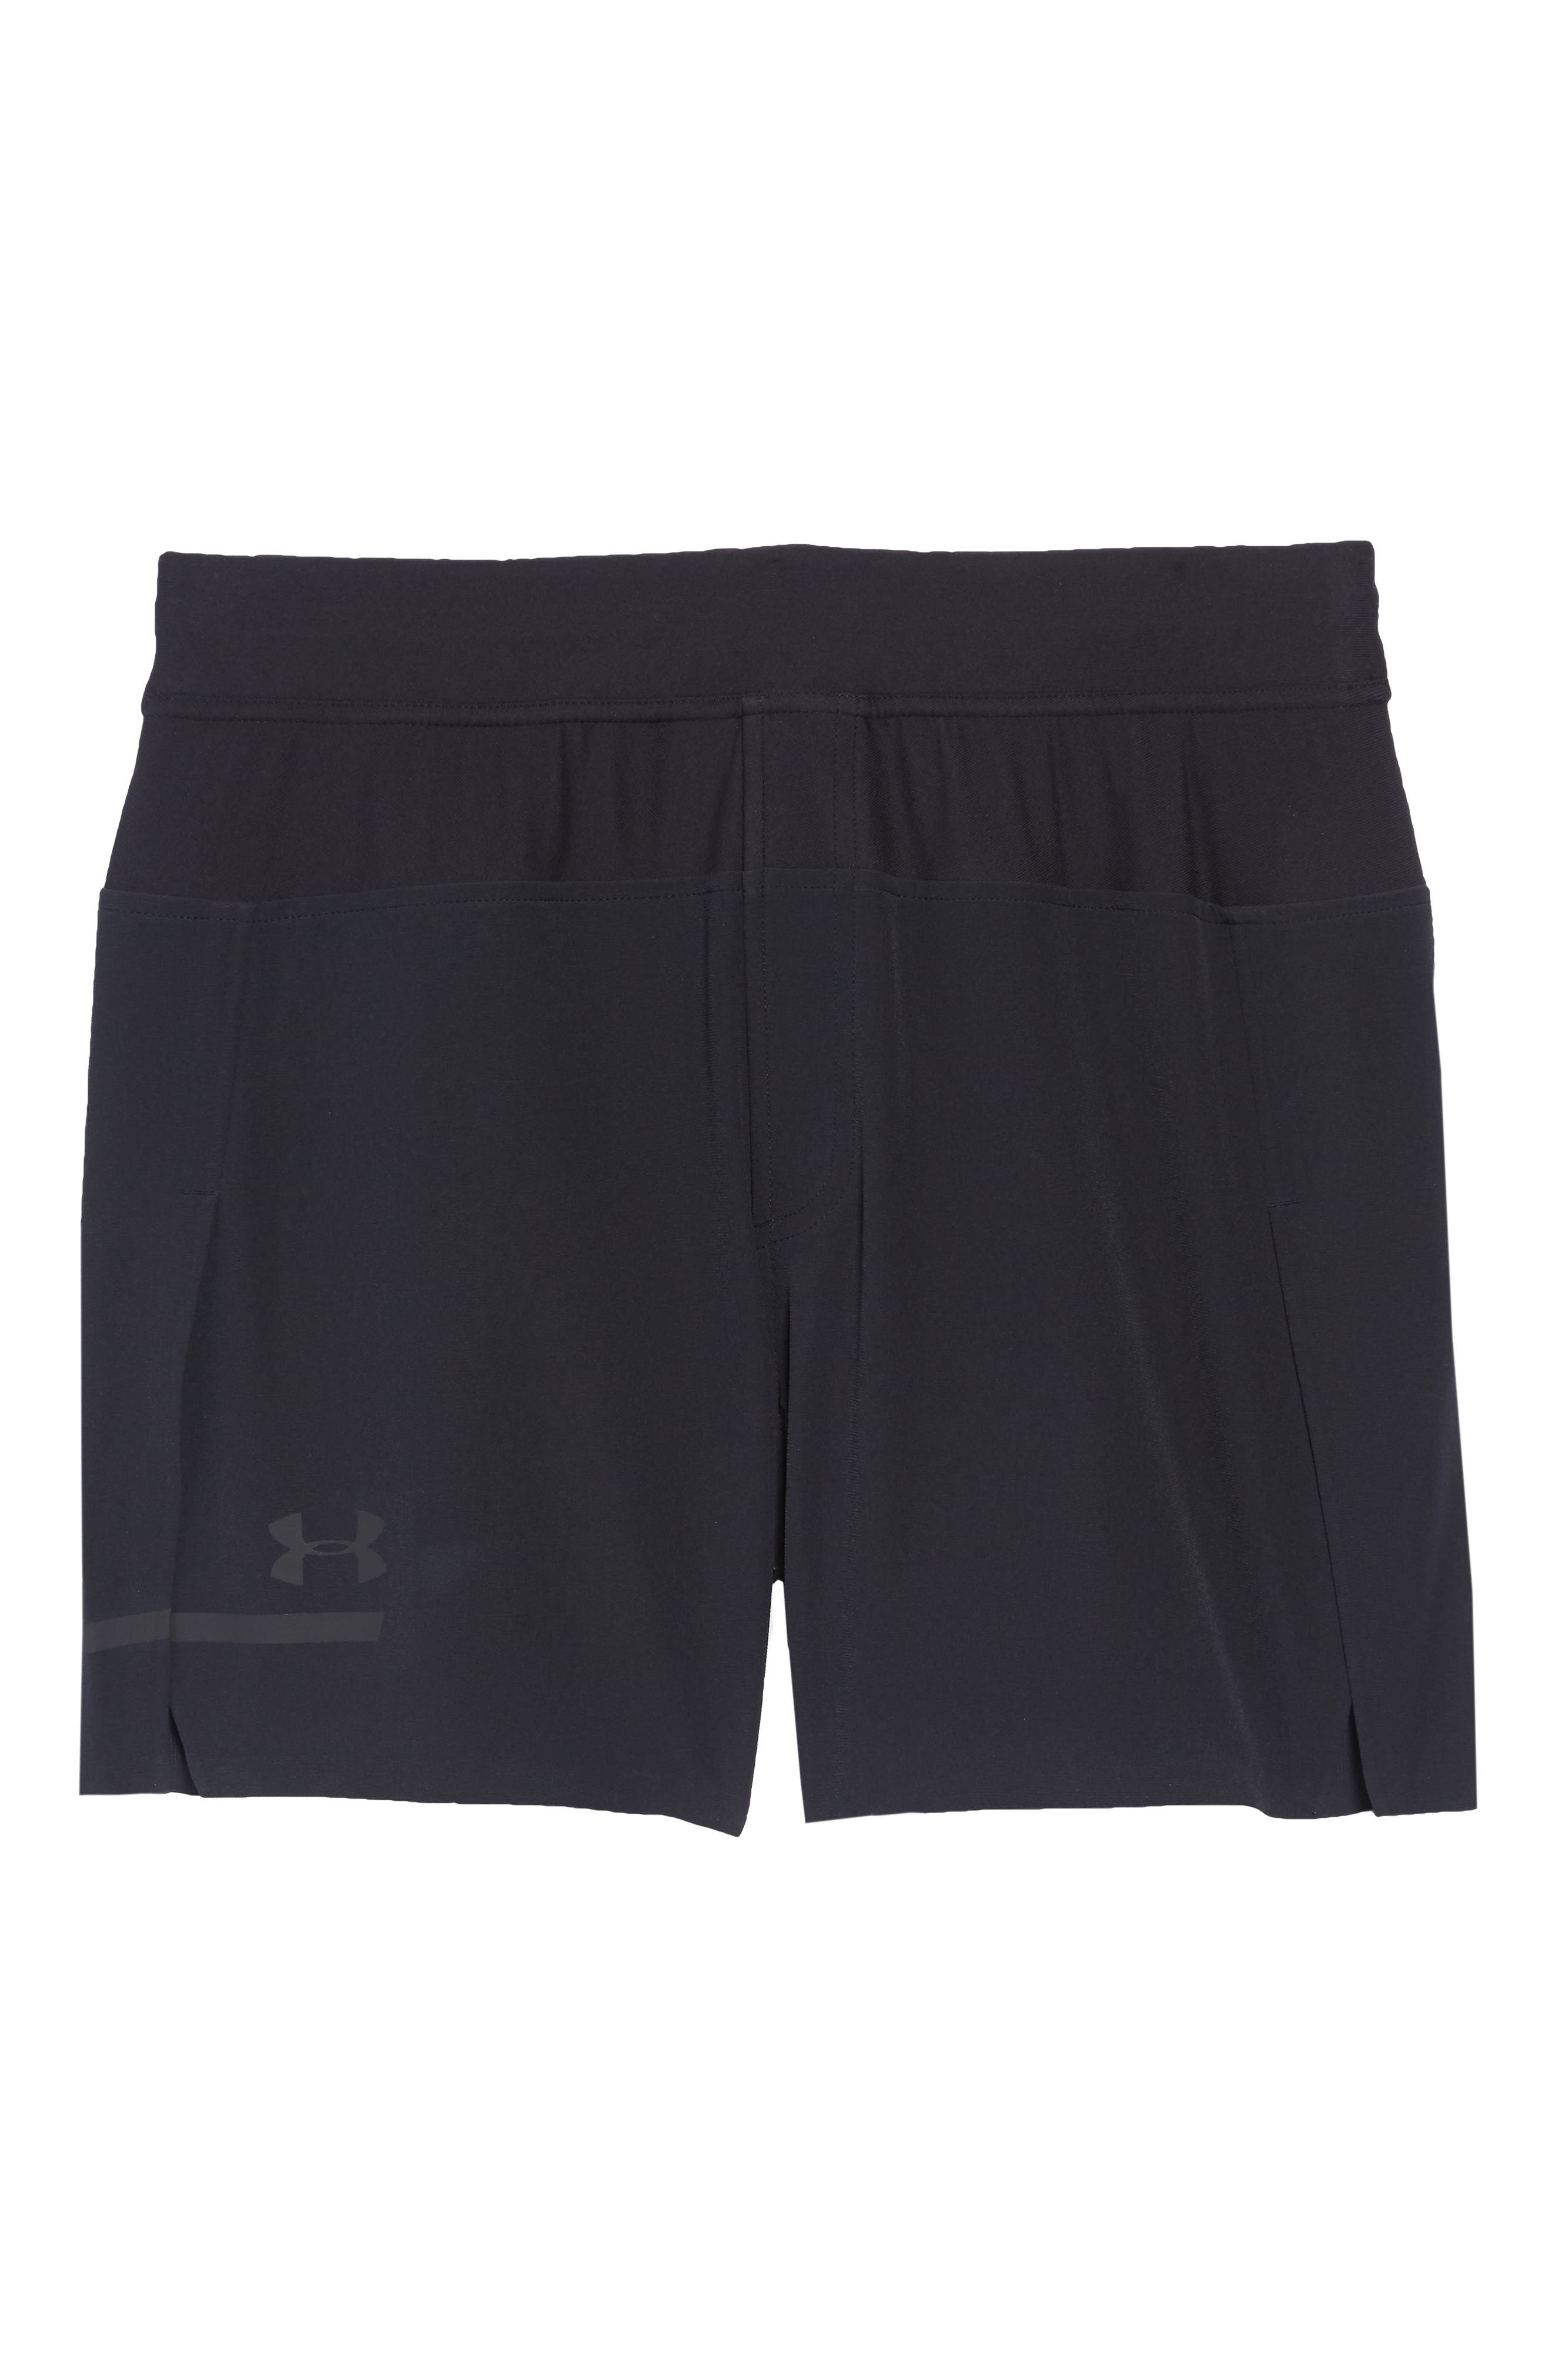 Perpetual Fitted Shorts,                             Alternate thumbnail 6, color,                             001